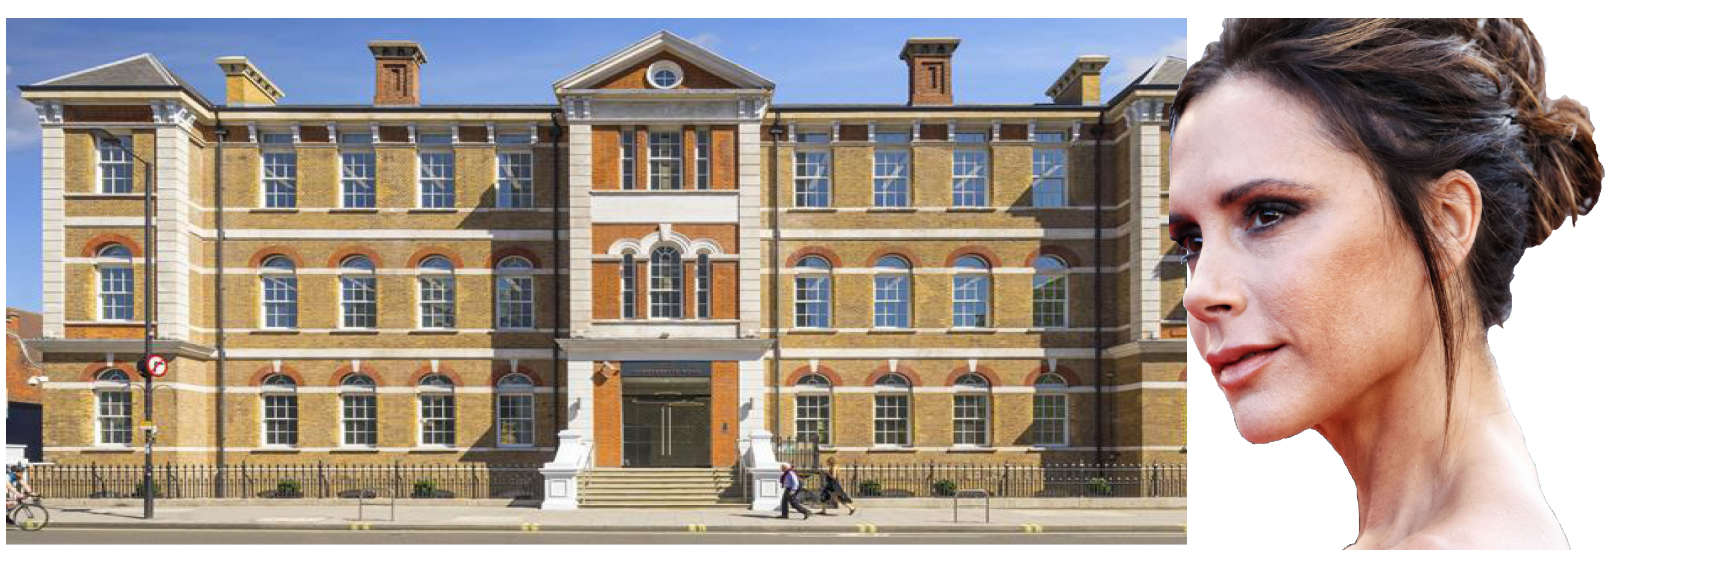 Haammersmith-West-London Office-sales-Victoria-Beckhams-HQ-202-Hammersmith-Road-W6